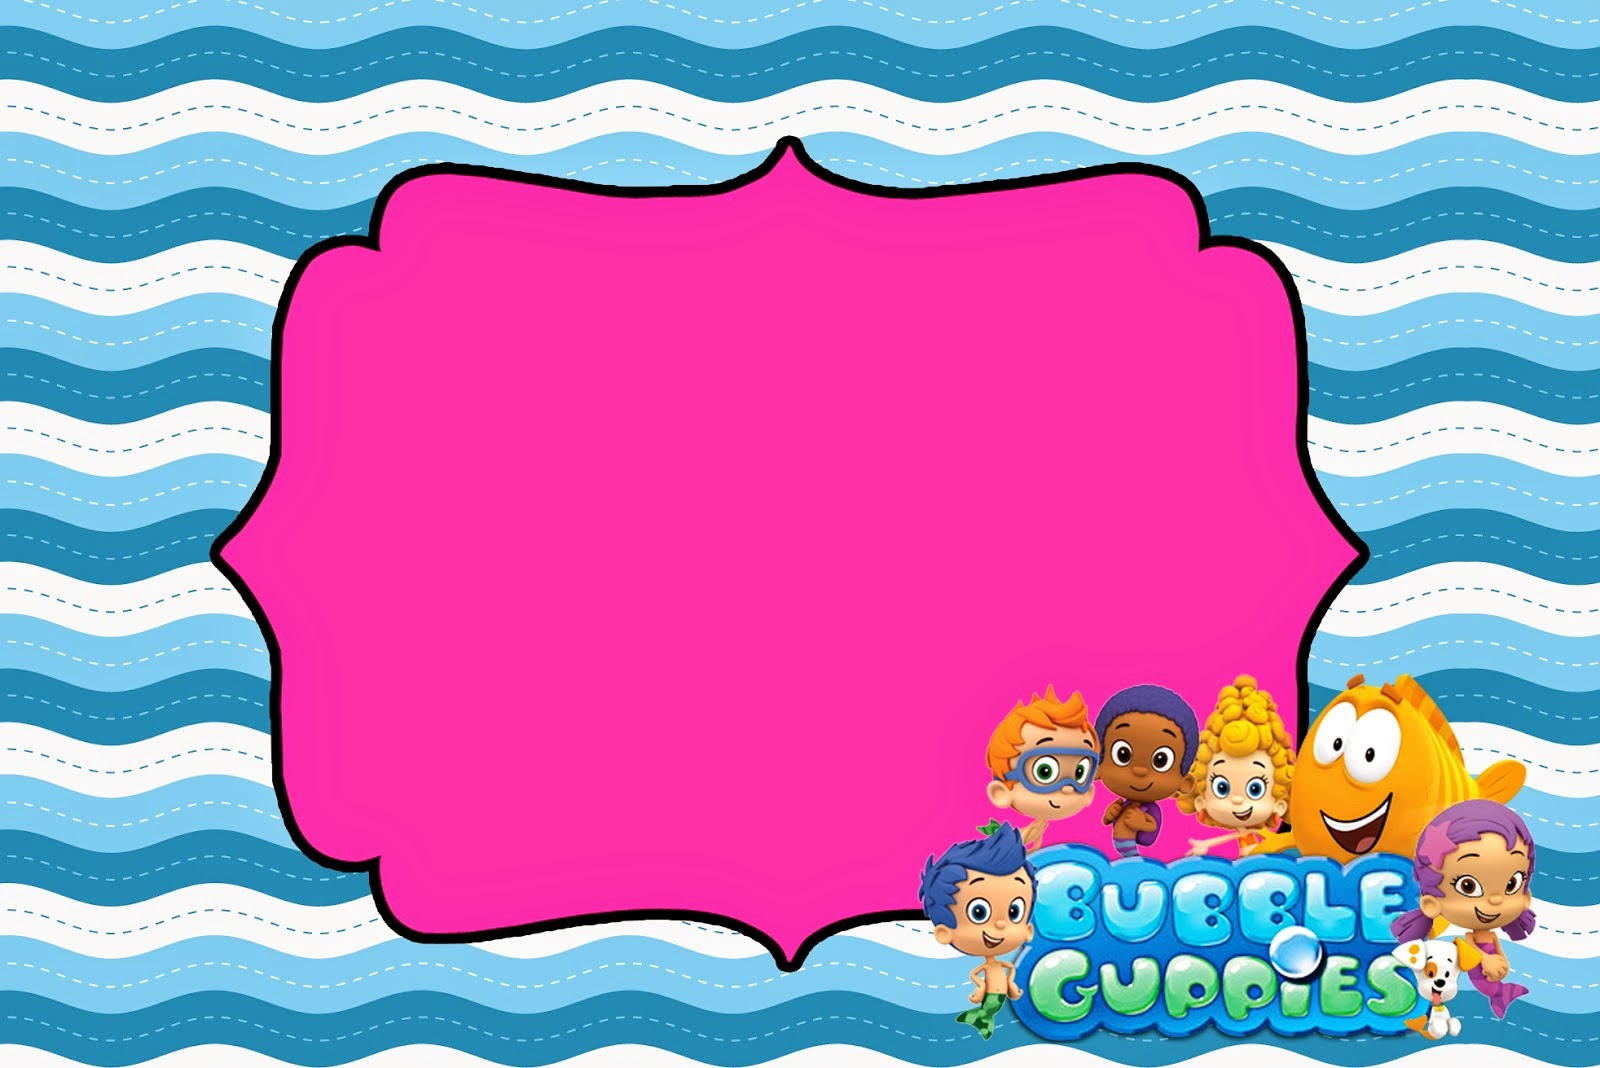 bubble guppies printable invitations is it for parties is bubble guppies printable invitations